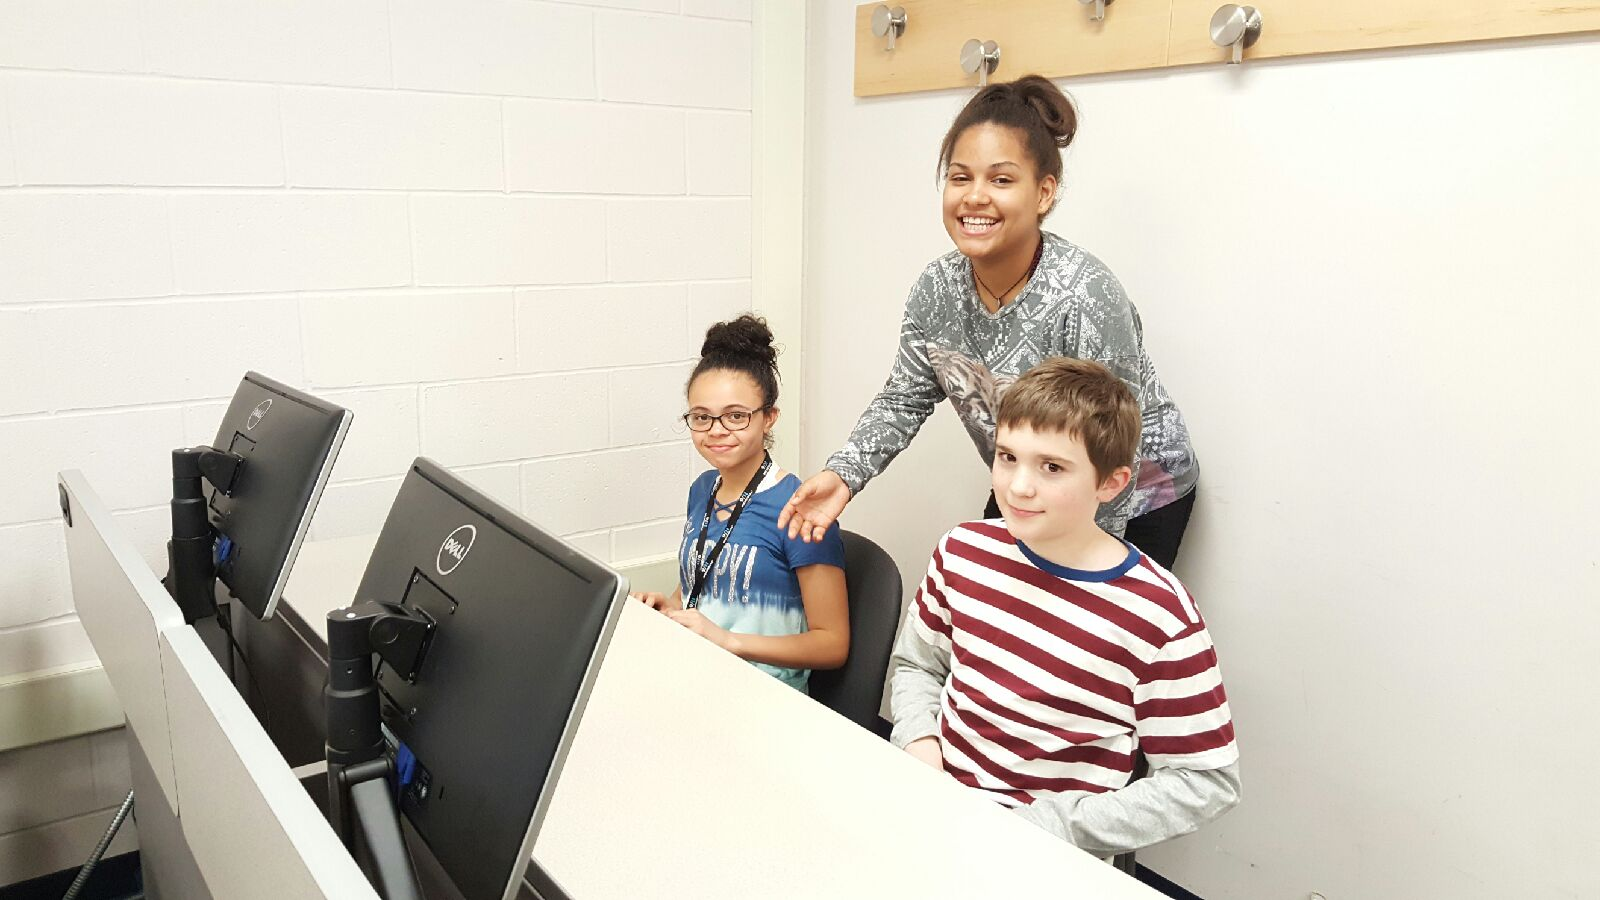 Copy of Instructor helping students